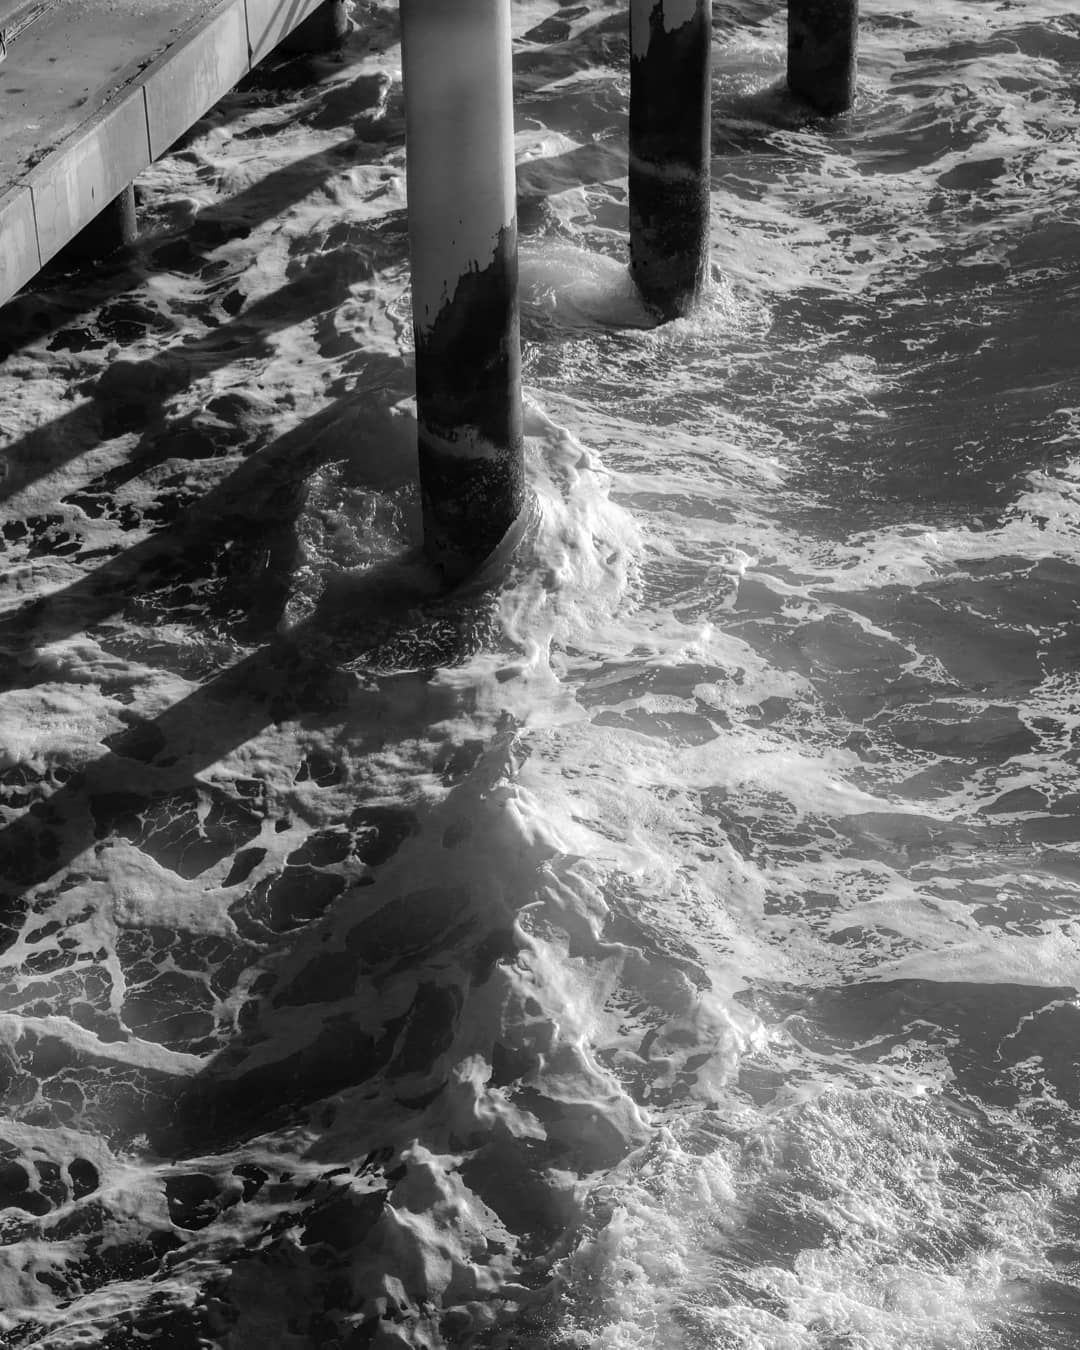 Waves.  Also available as print. Just check out my website. ☑️ #wave #waves #bw #sea #ocean #beach #beachvibes #beachlife #lifeisbetteratthebeach #sunny #sunnyday #beautifulsea #denhaag #print #prints #printsforsale #fineartprints #fineartphotography #photography #photographyprints #posters #darkroom